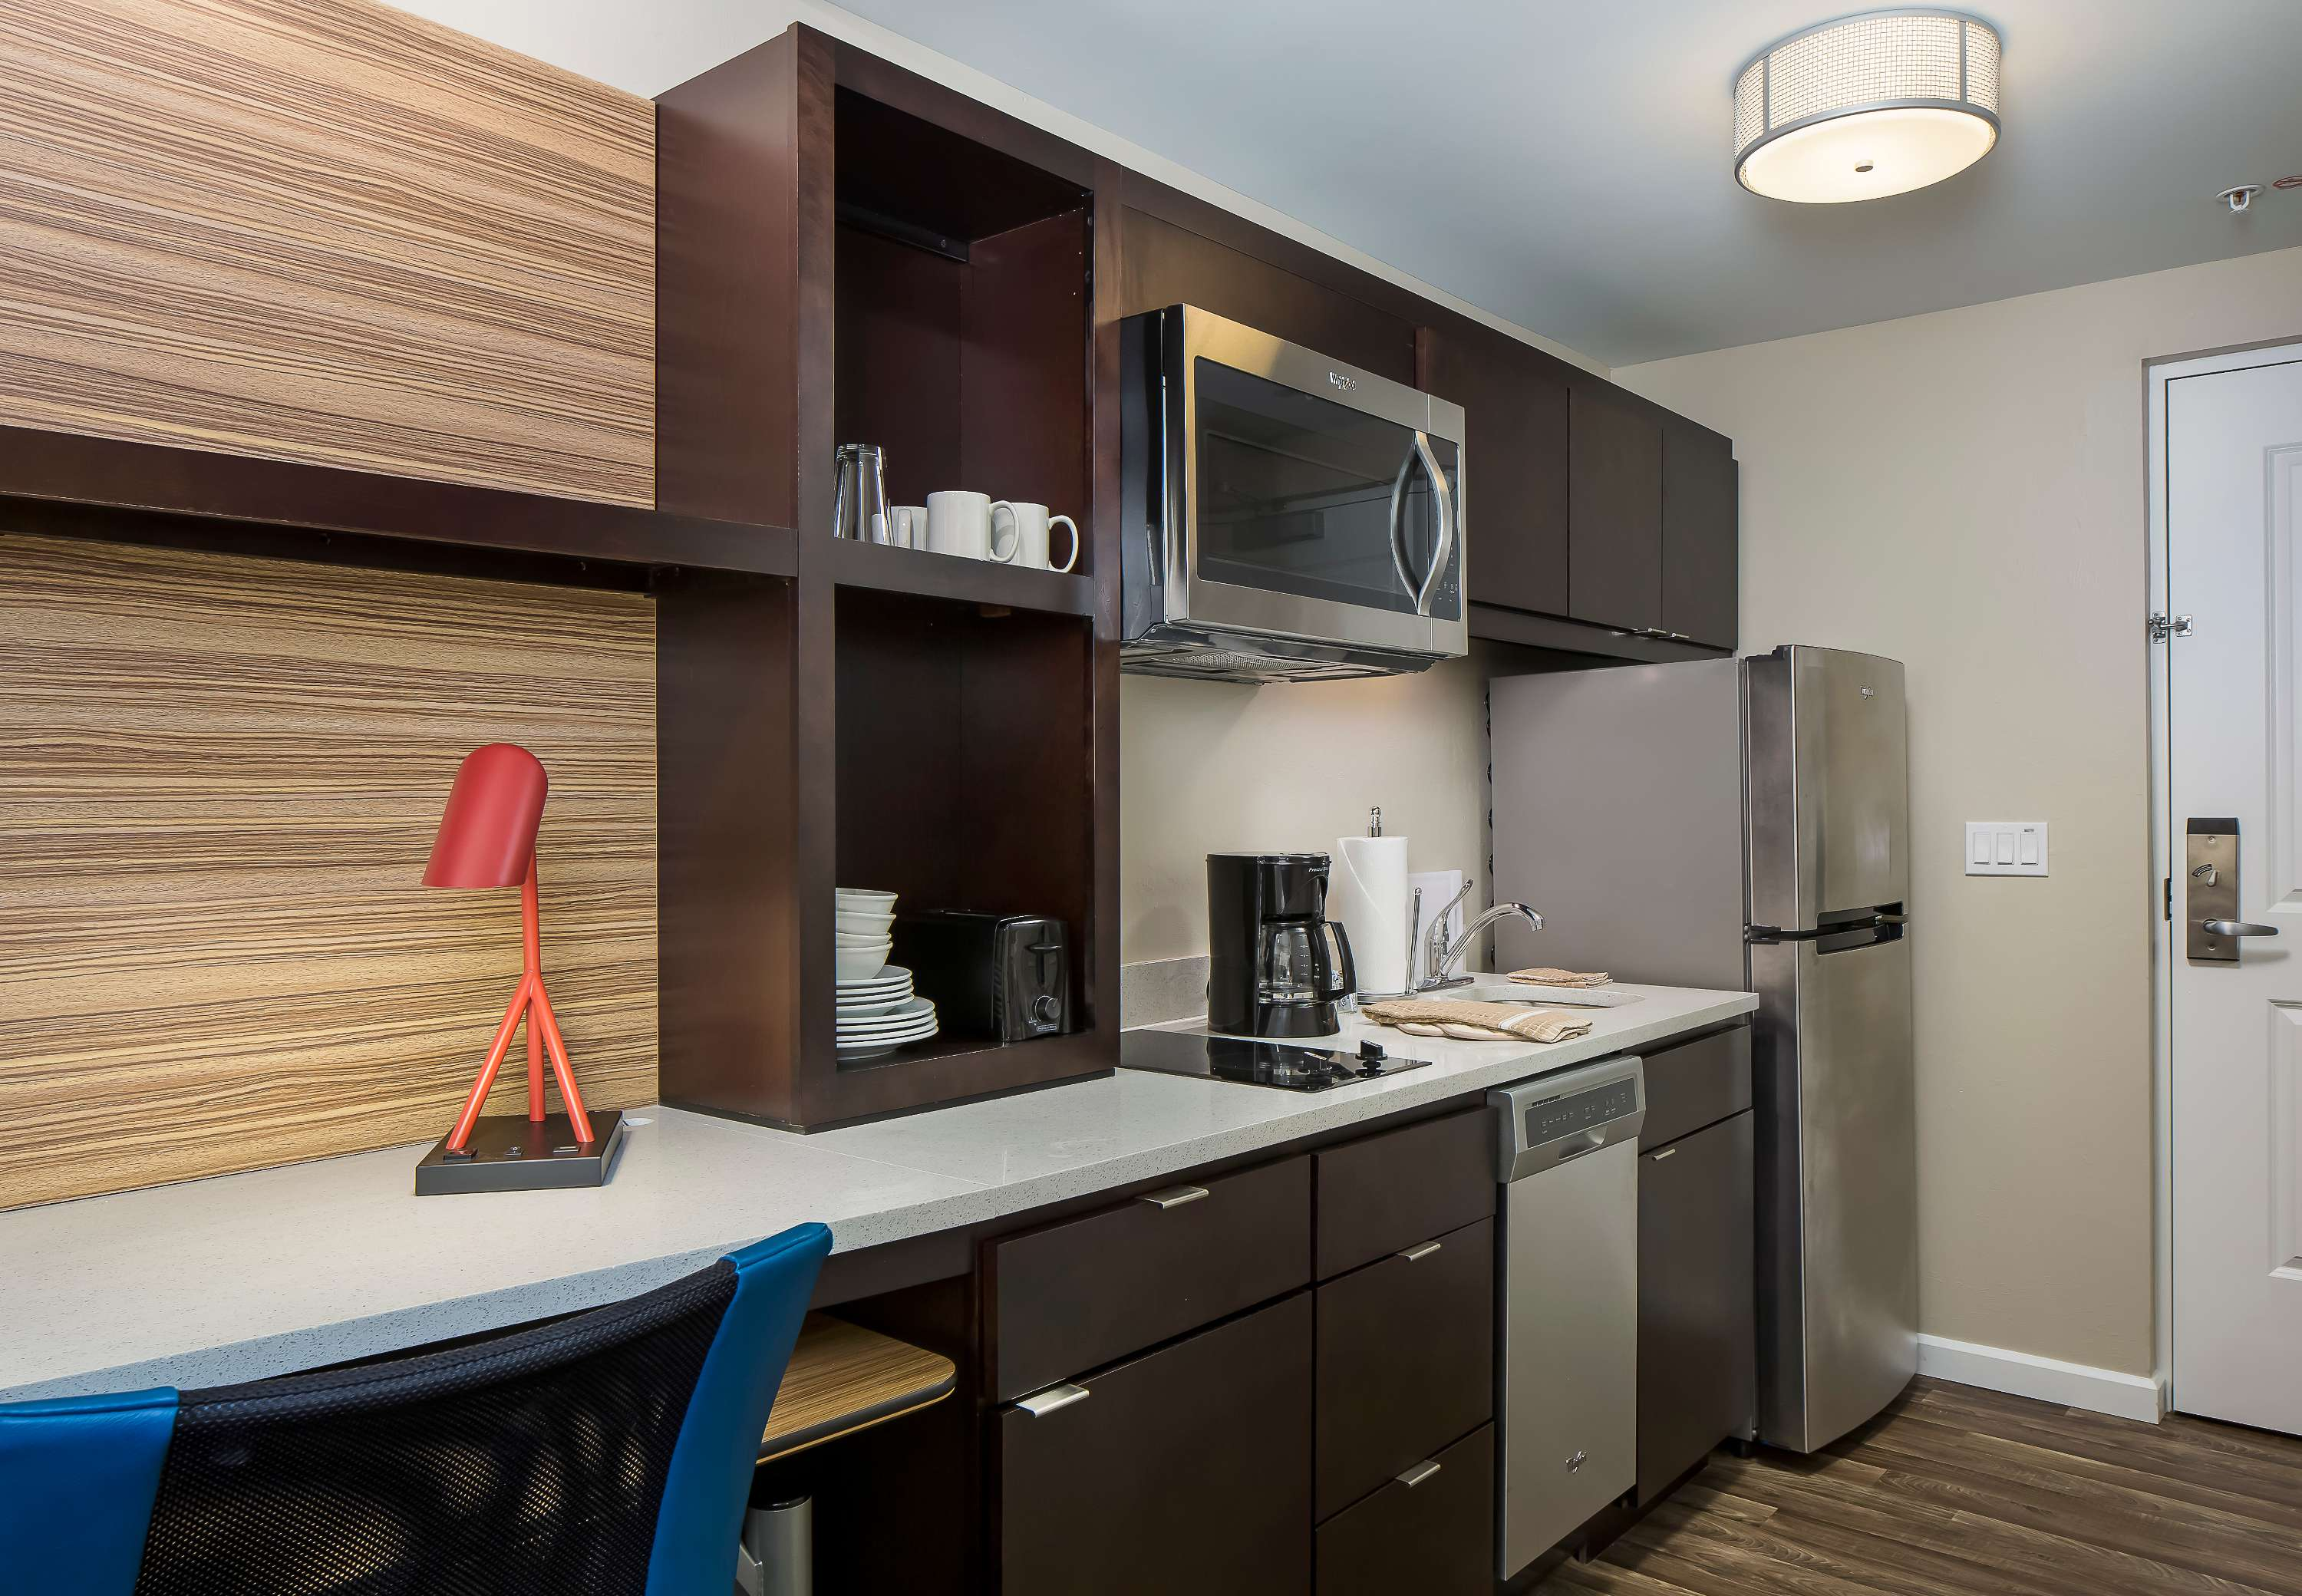 TownePlace Suites by Marriott Fort Myers Estero image 13